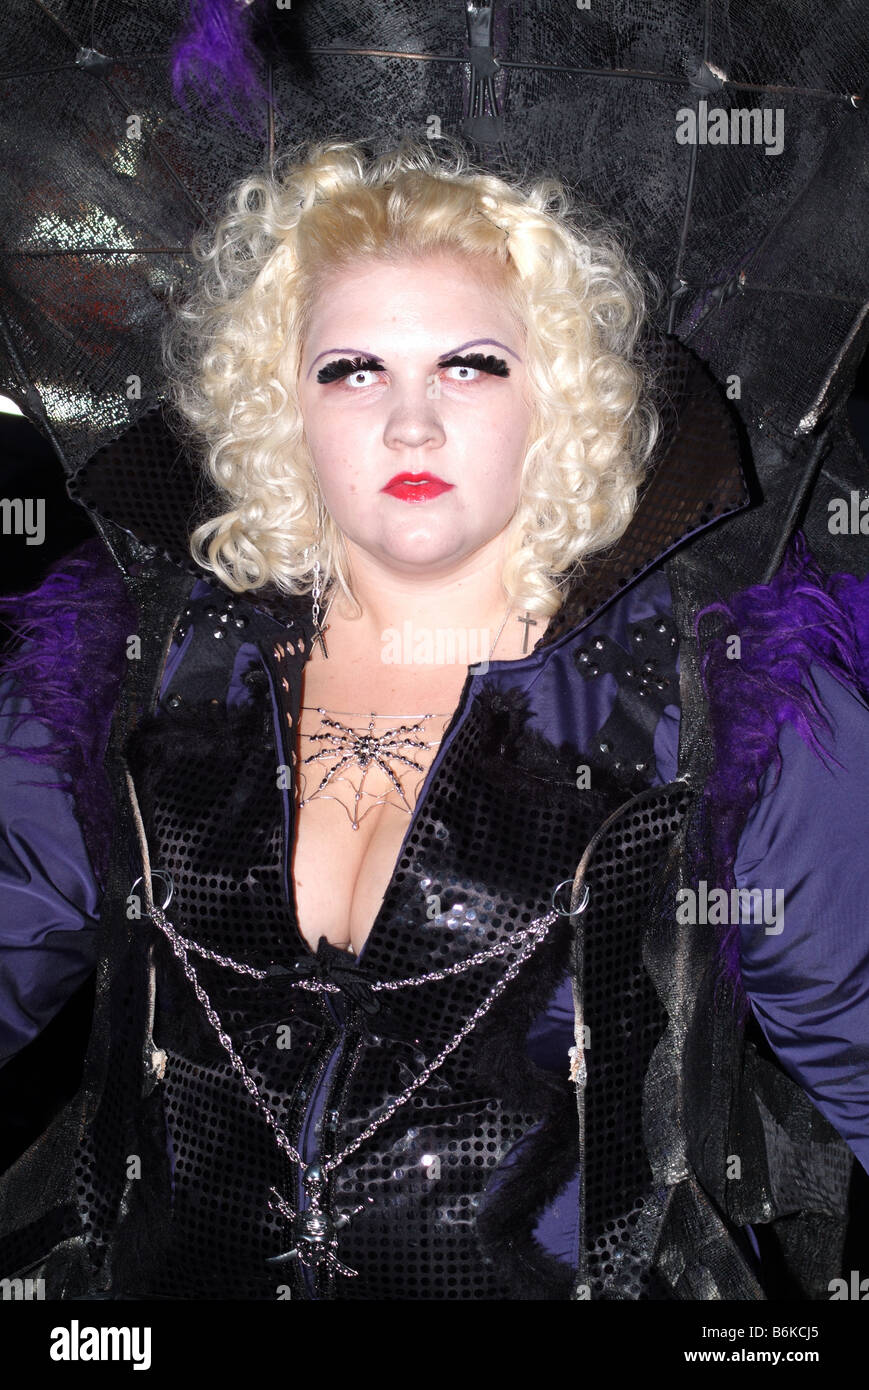 hedonist vampire witch pagan paganism thames festival carnival festival street theatre london england uk - Stock Image